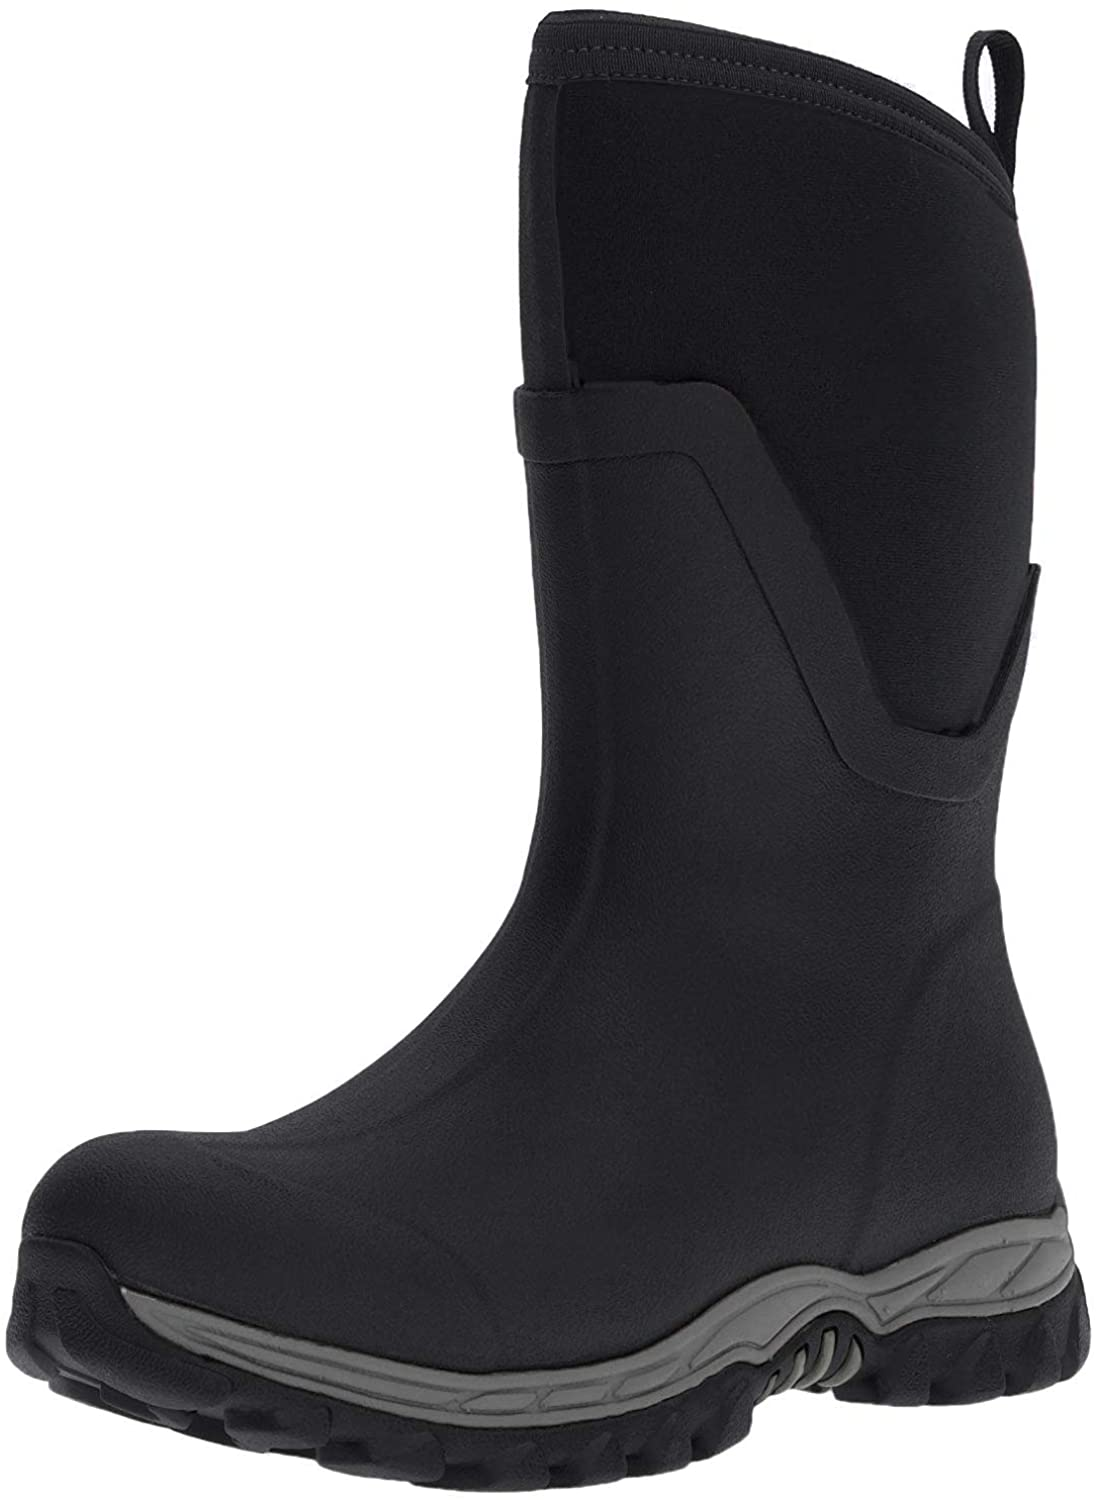 Muck Boot Arctic Sport II Extreme Conditions Mid-Height Rubber Women's Winter Boot, Black, 8 M US